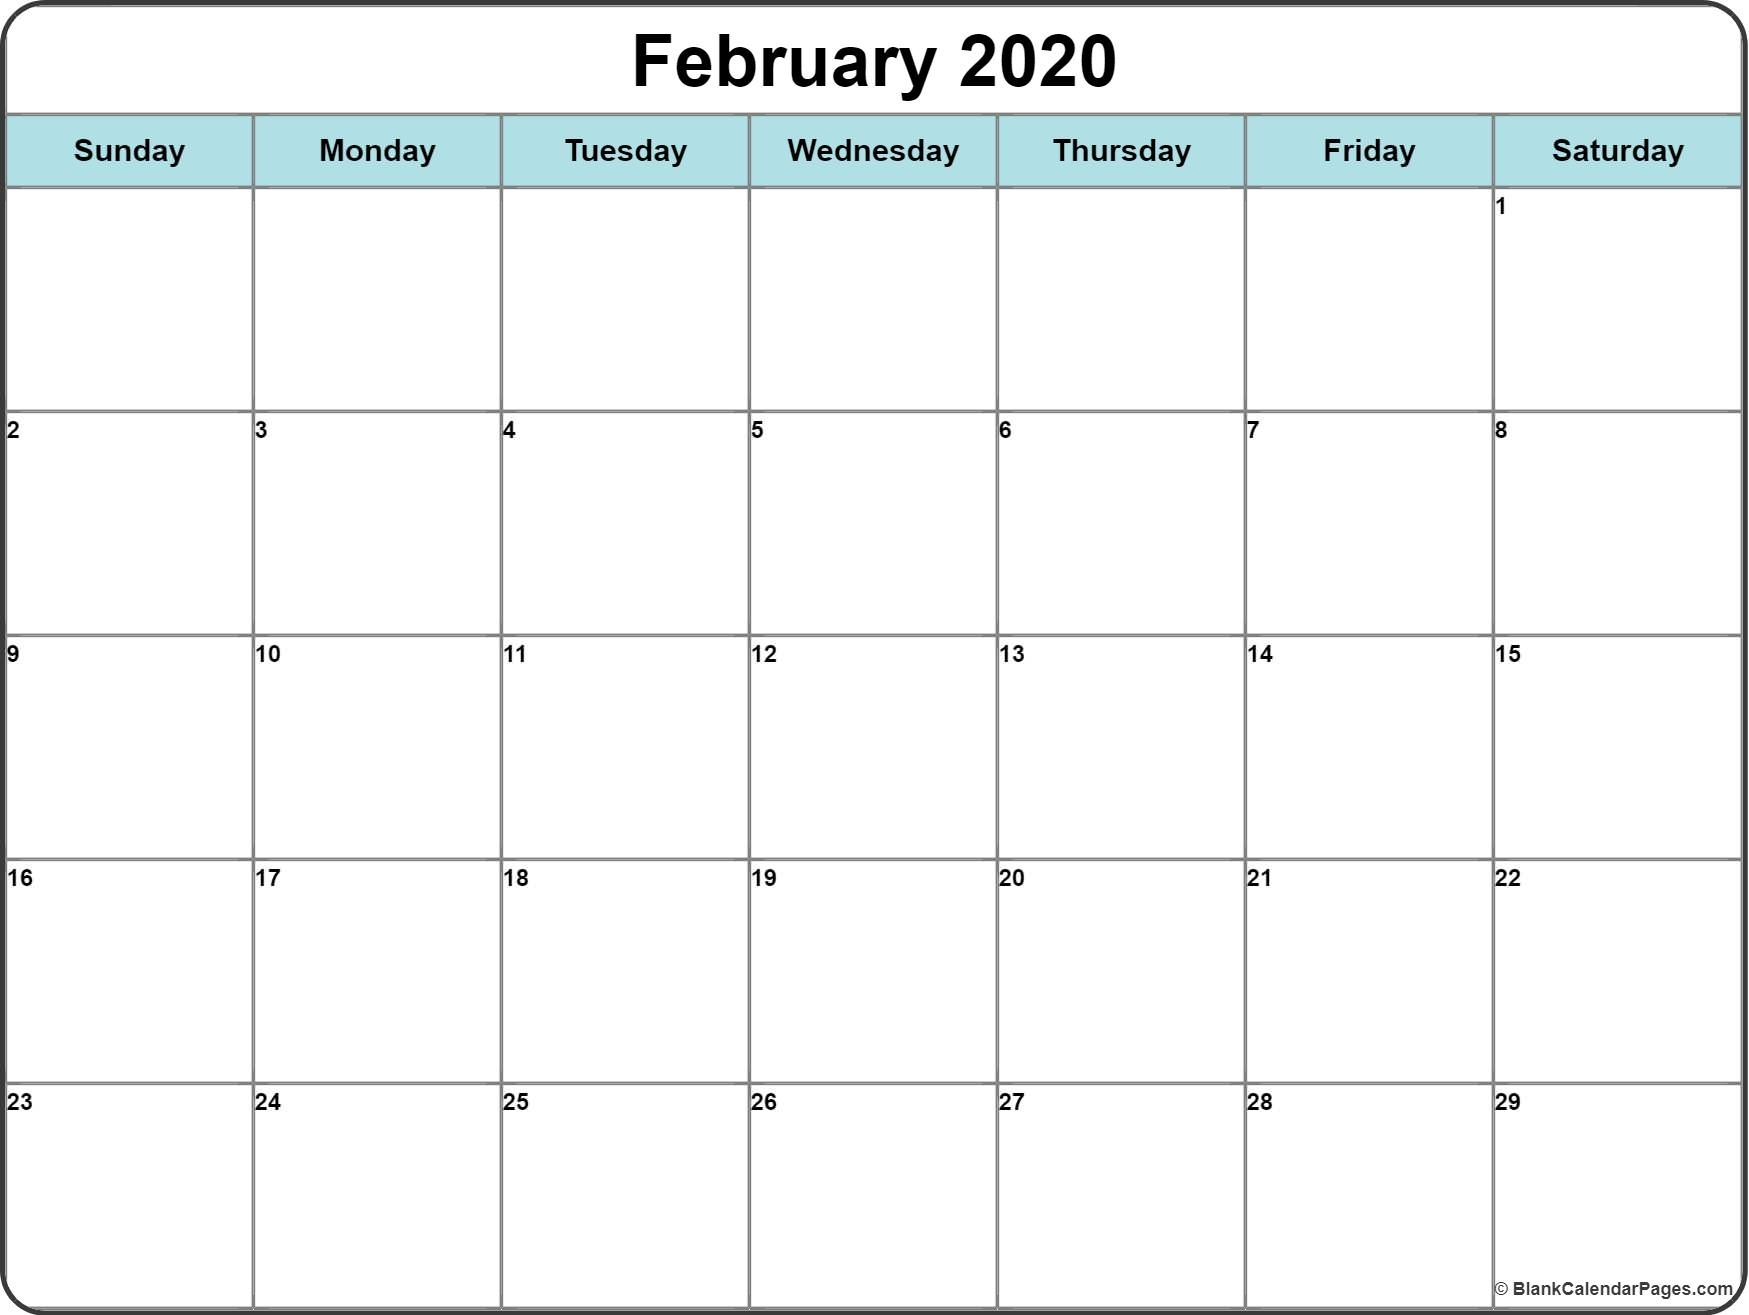 February 2020 Calendar | Free Printable Monthly Calendars throughout 2020 Calendar With Space To Write